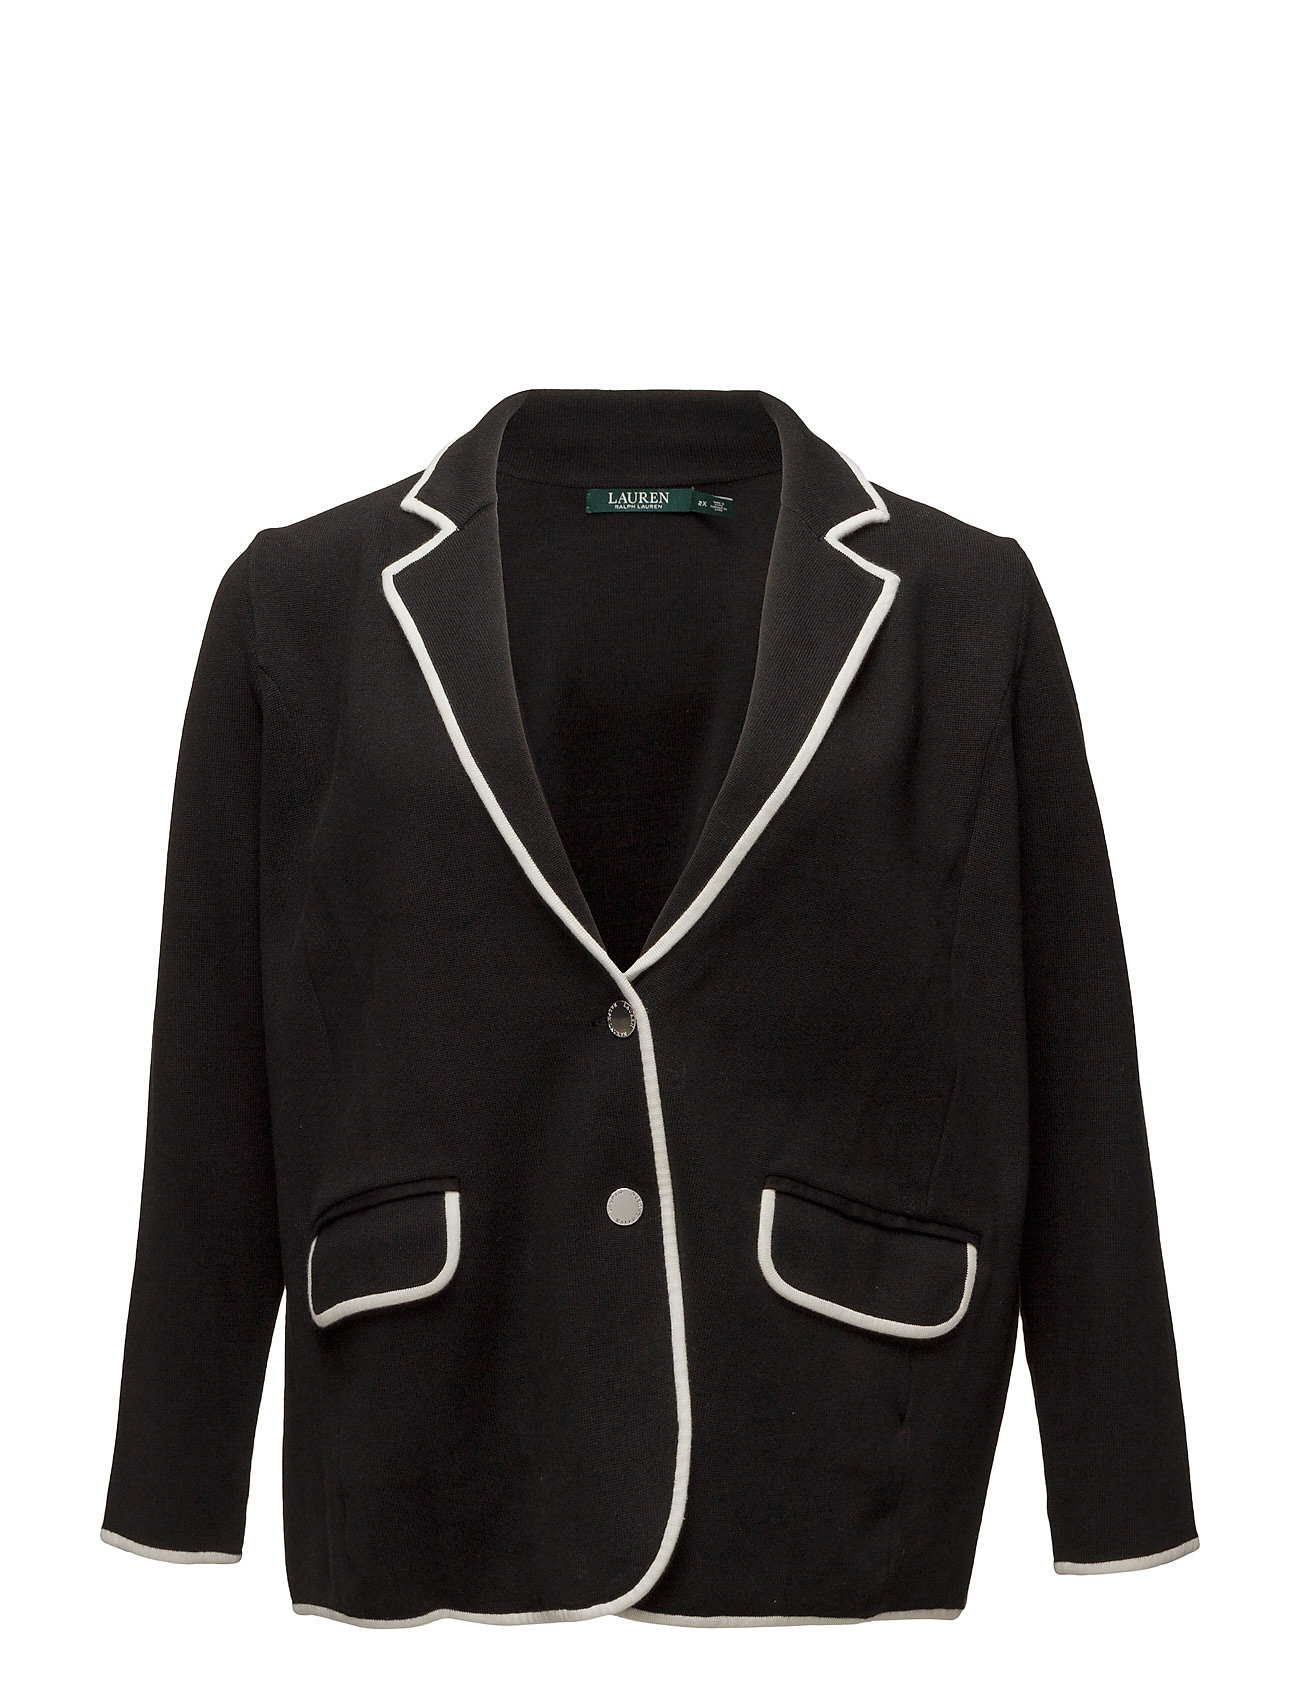 Stretch Cotton Sweater Blazer (Polo Black/herb) (99.50 €) - Lauren ...